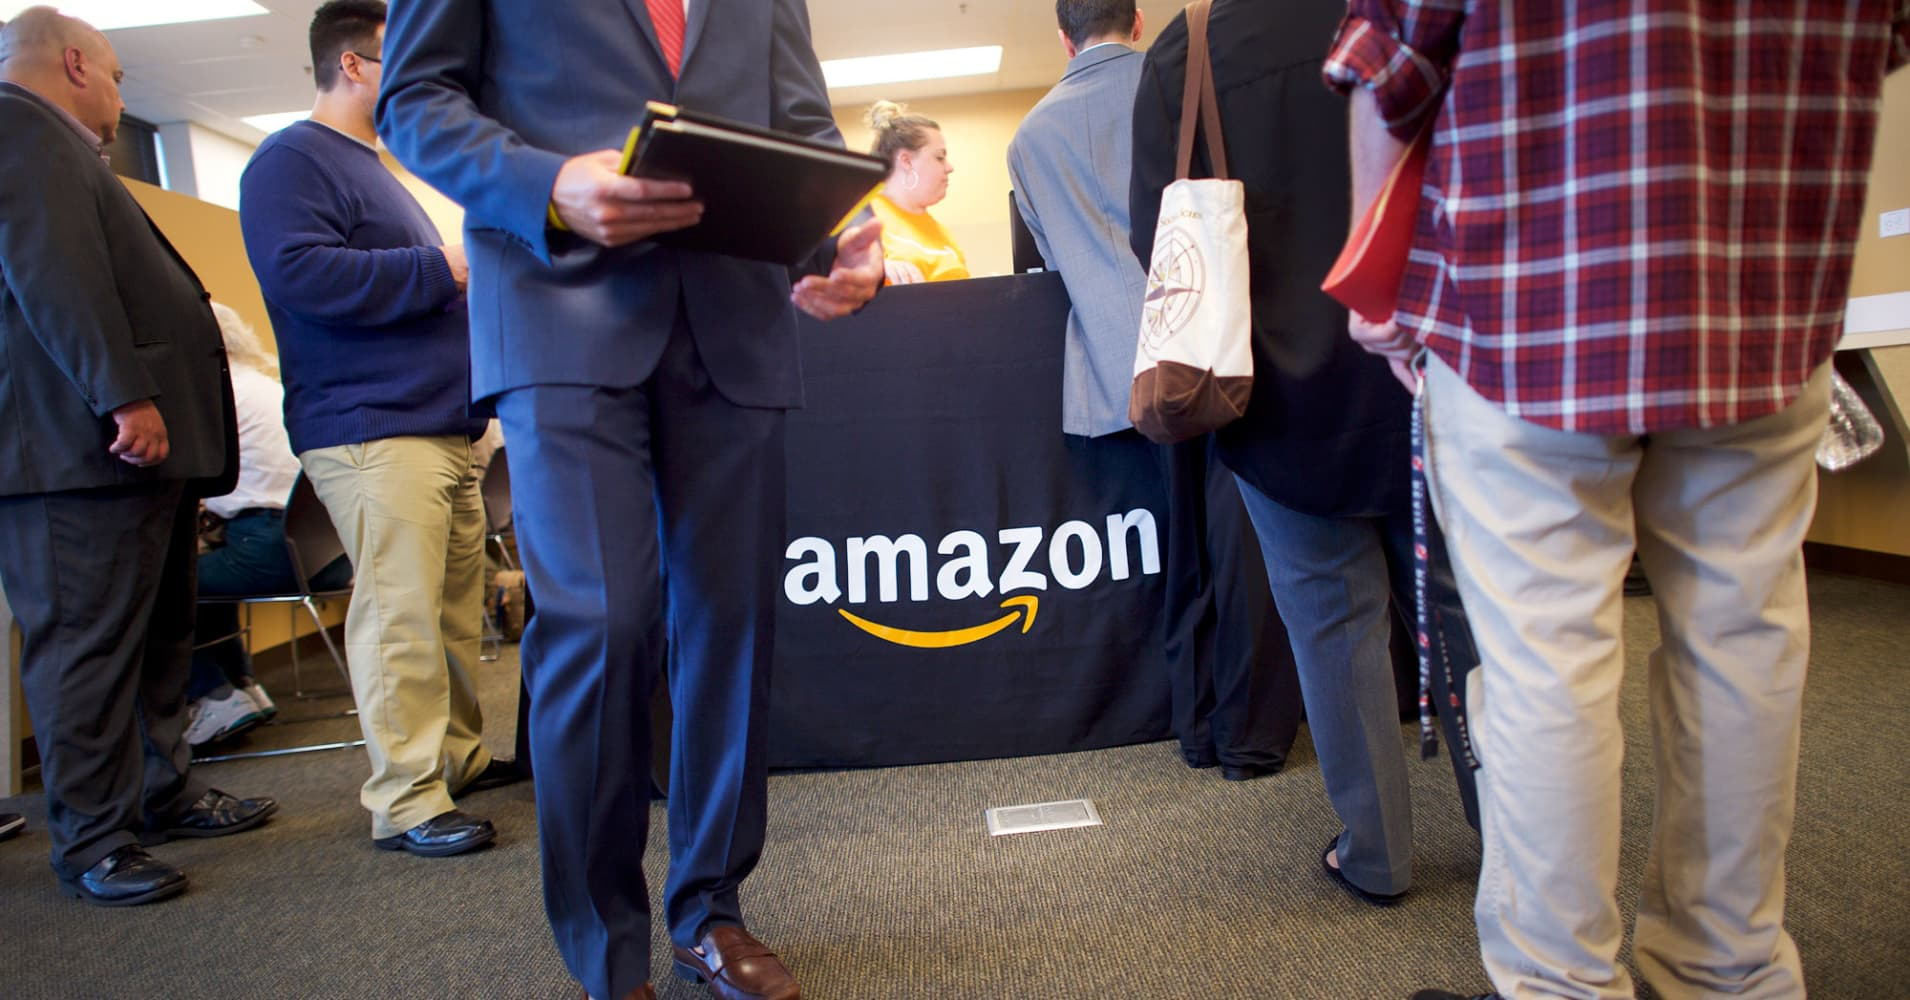 Top Amazon recruiter reveals how you can score a job at the company